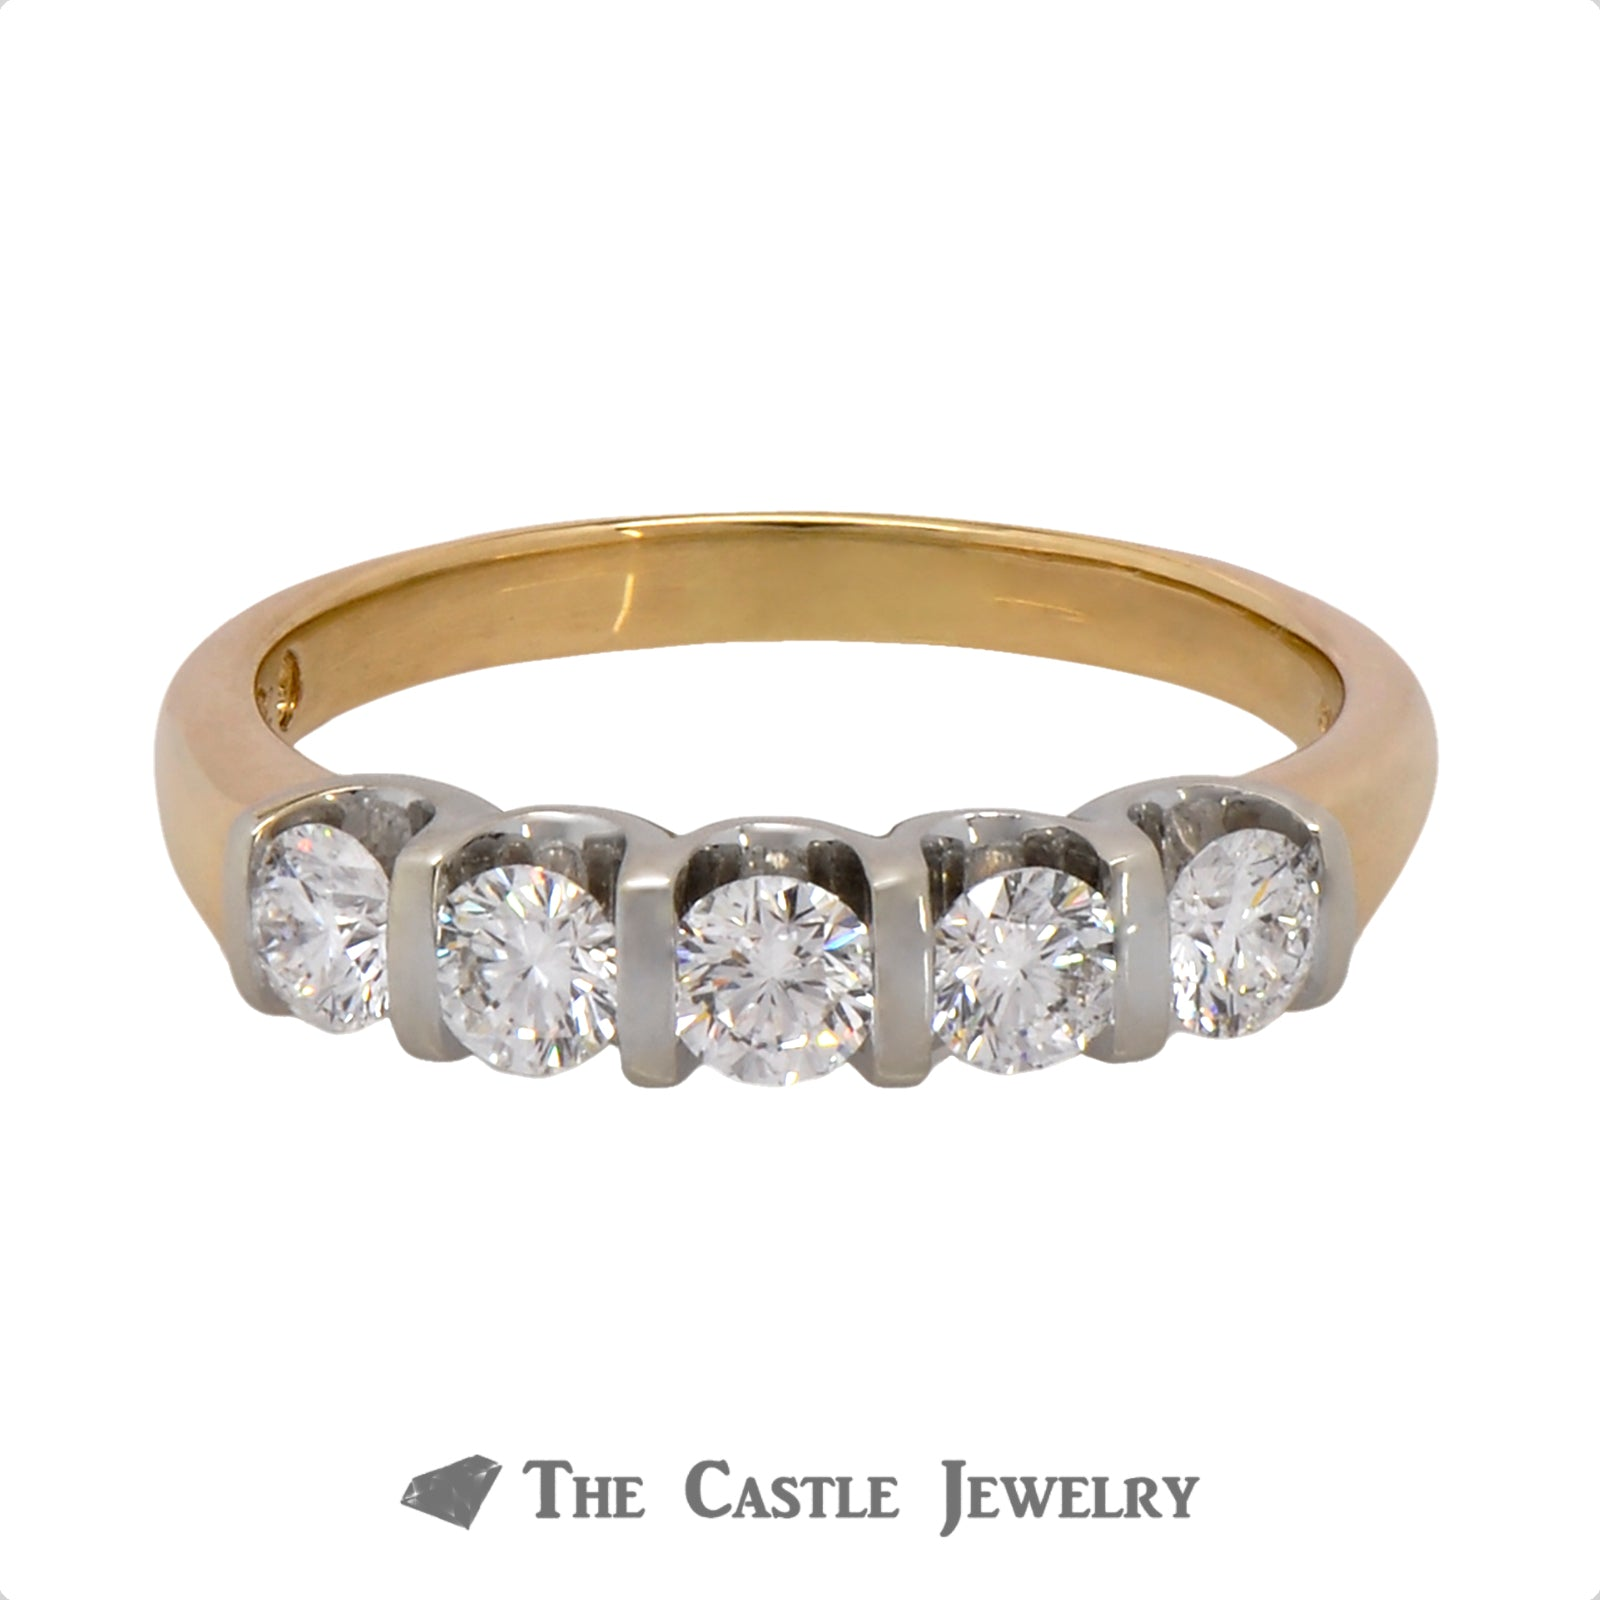 The Leo Designer Diamond Band in 14k Yellow Gold